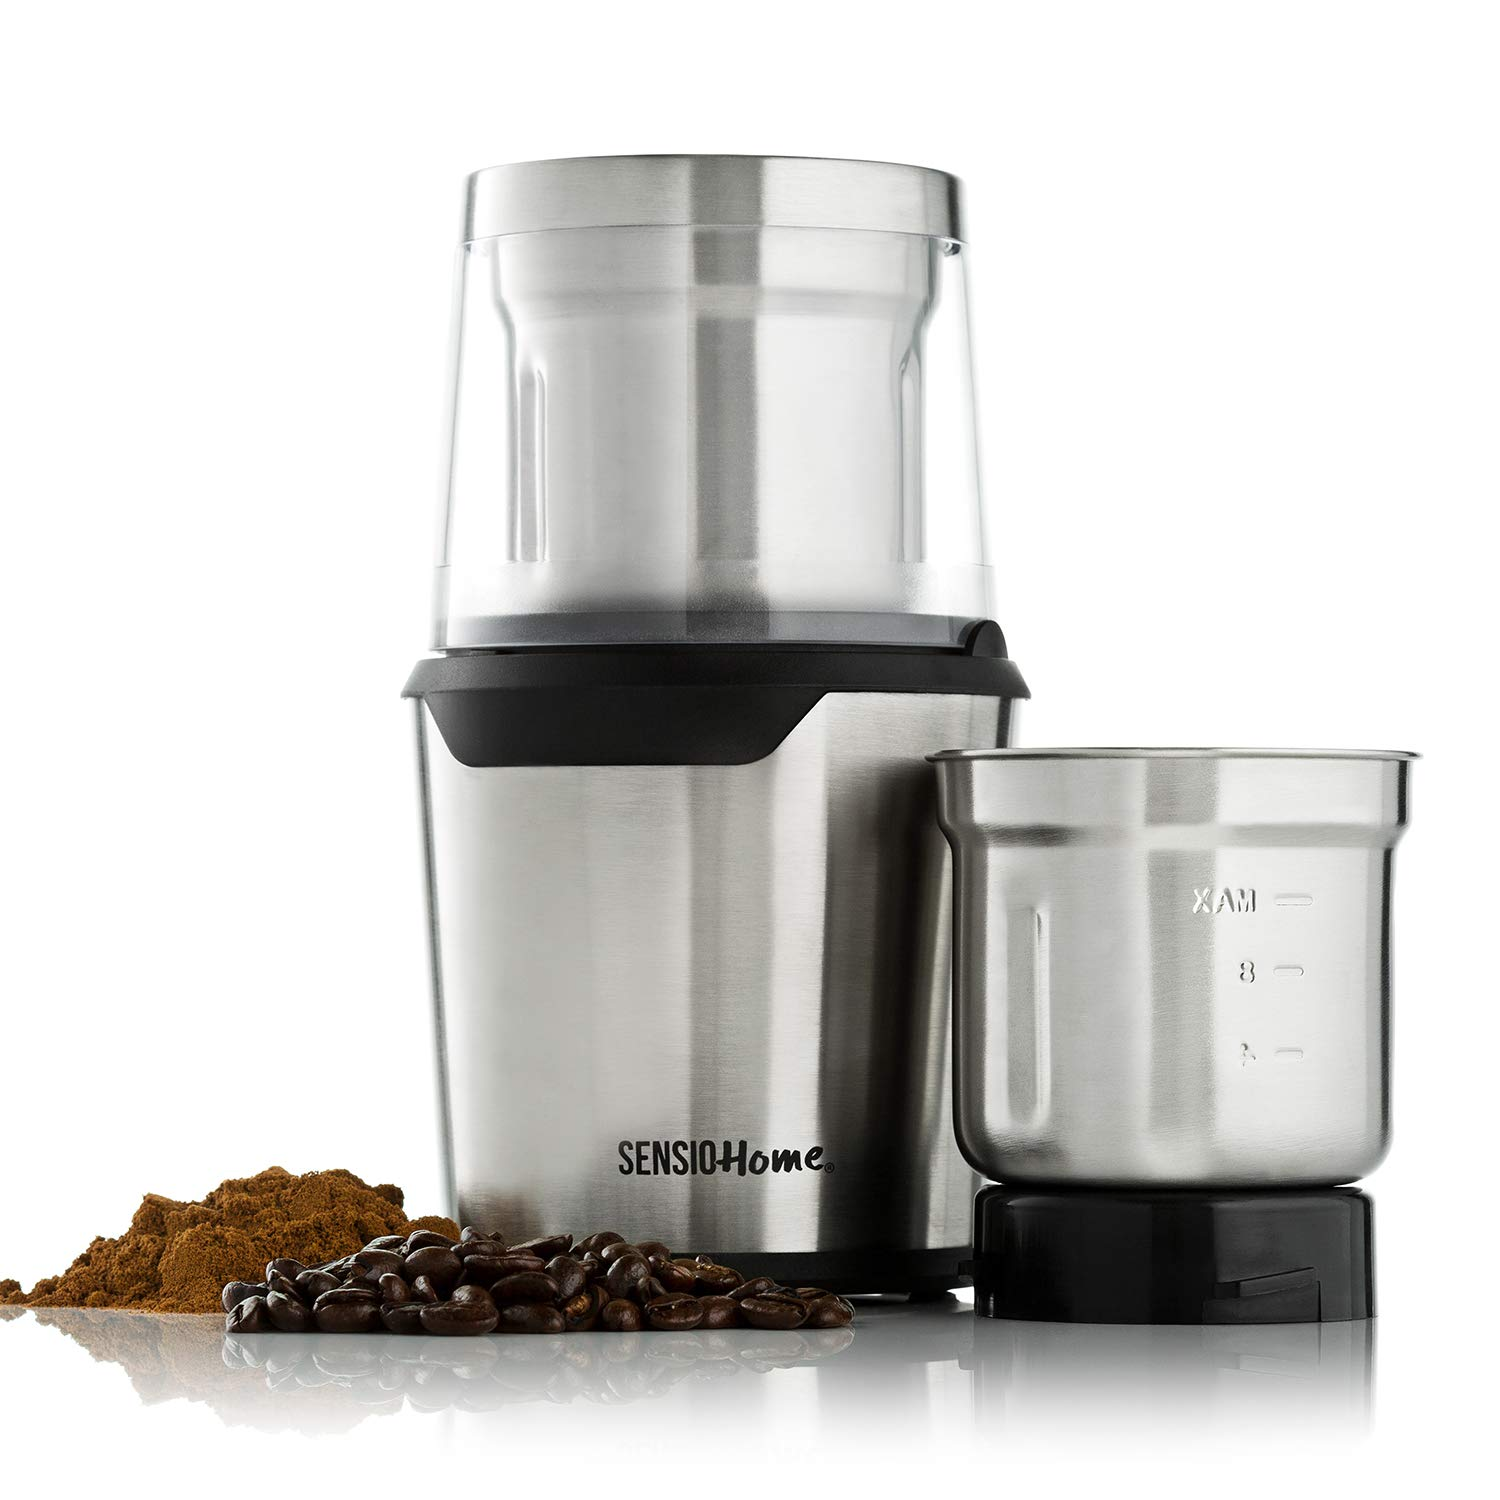 Sensio Home Coffee Grinder | Electric Coffee Bean, Herb & Spice Grinder Machine | Two Detachable 2 8 Ounce Capacity Cups for Wet and Dry Food | 200 Watts